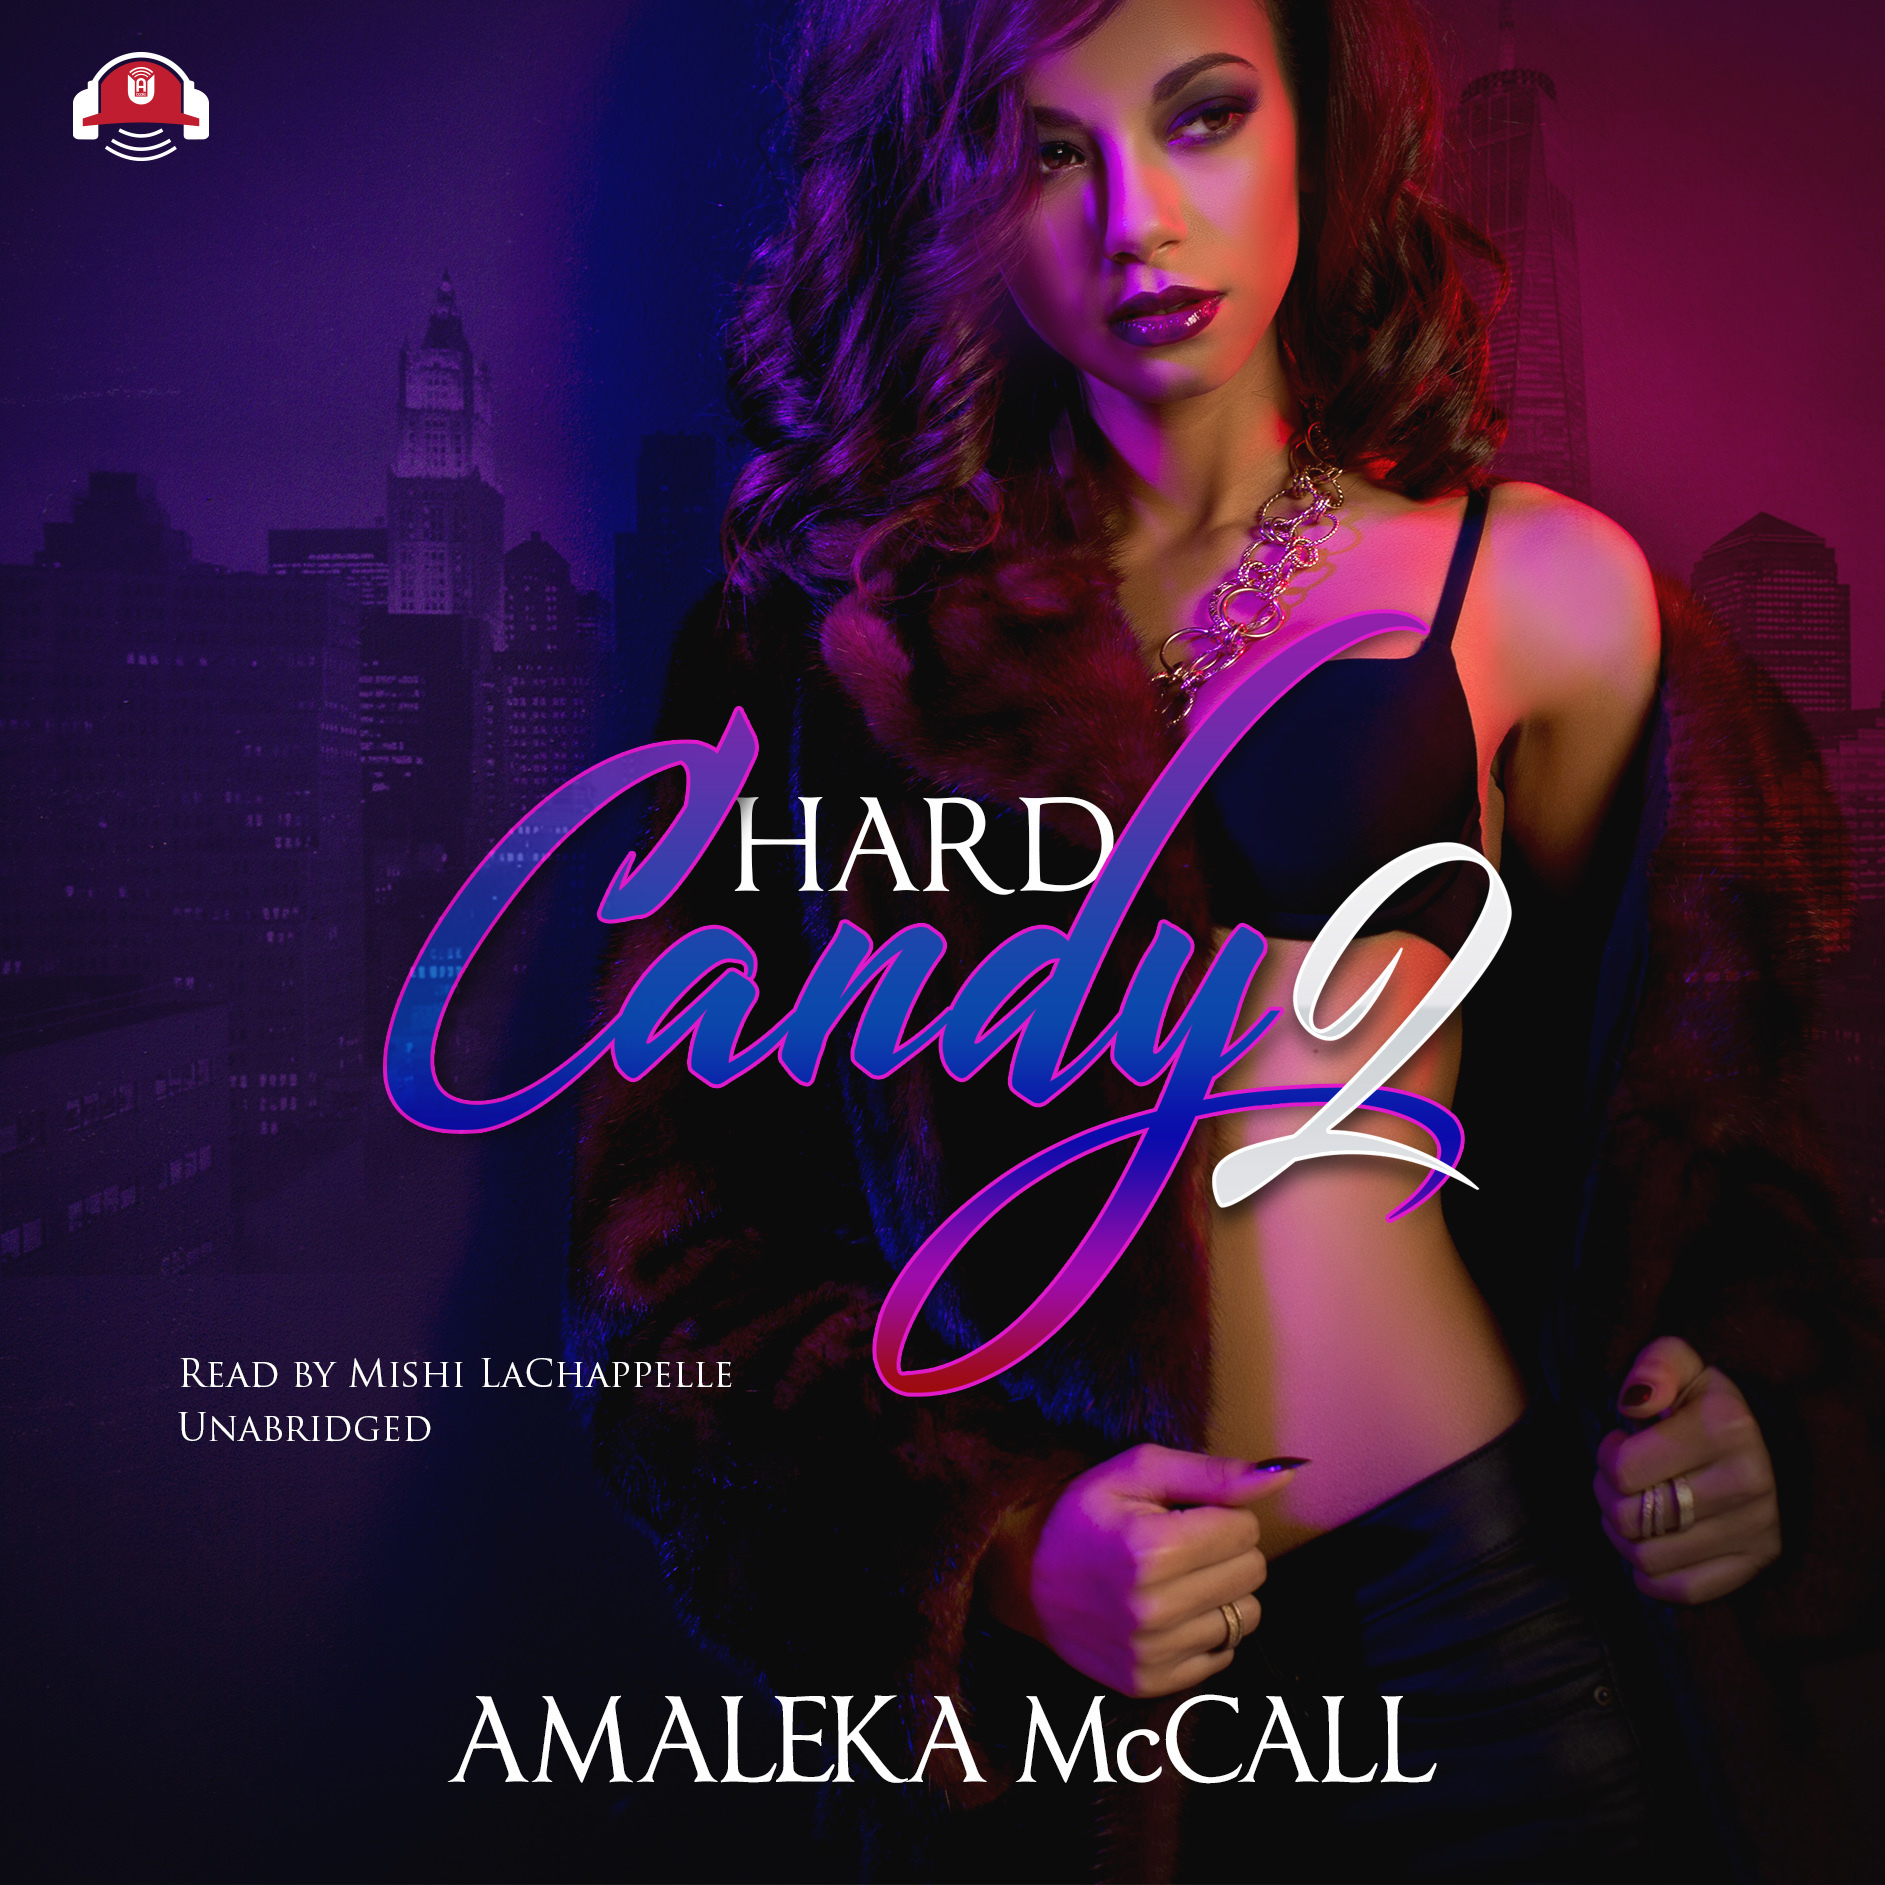 Printable Hard Candy 2: Secrets Uncovered Audiobook Cover Art